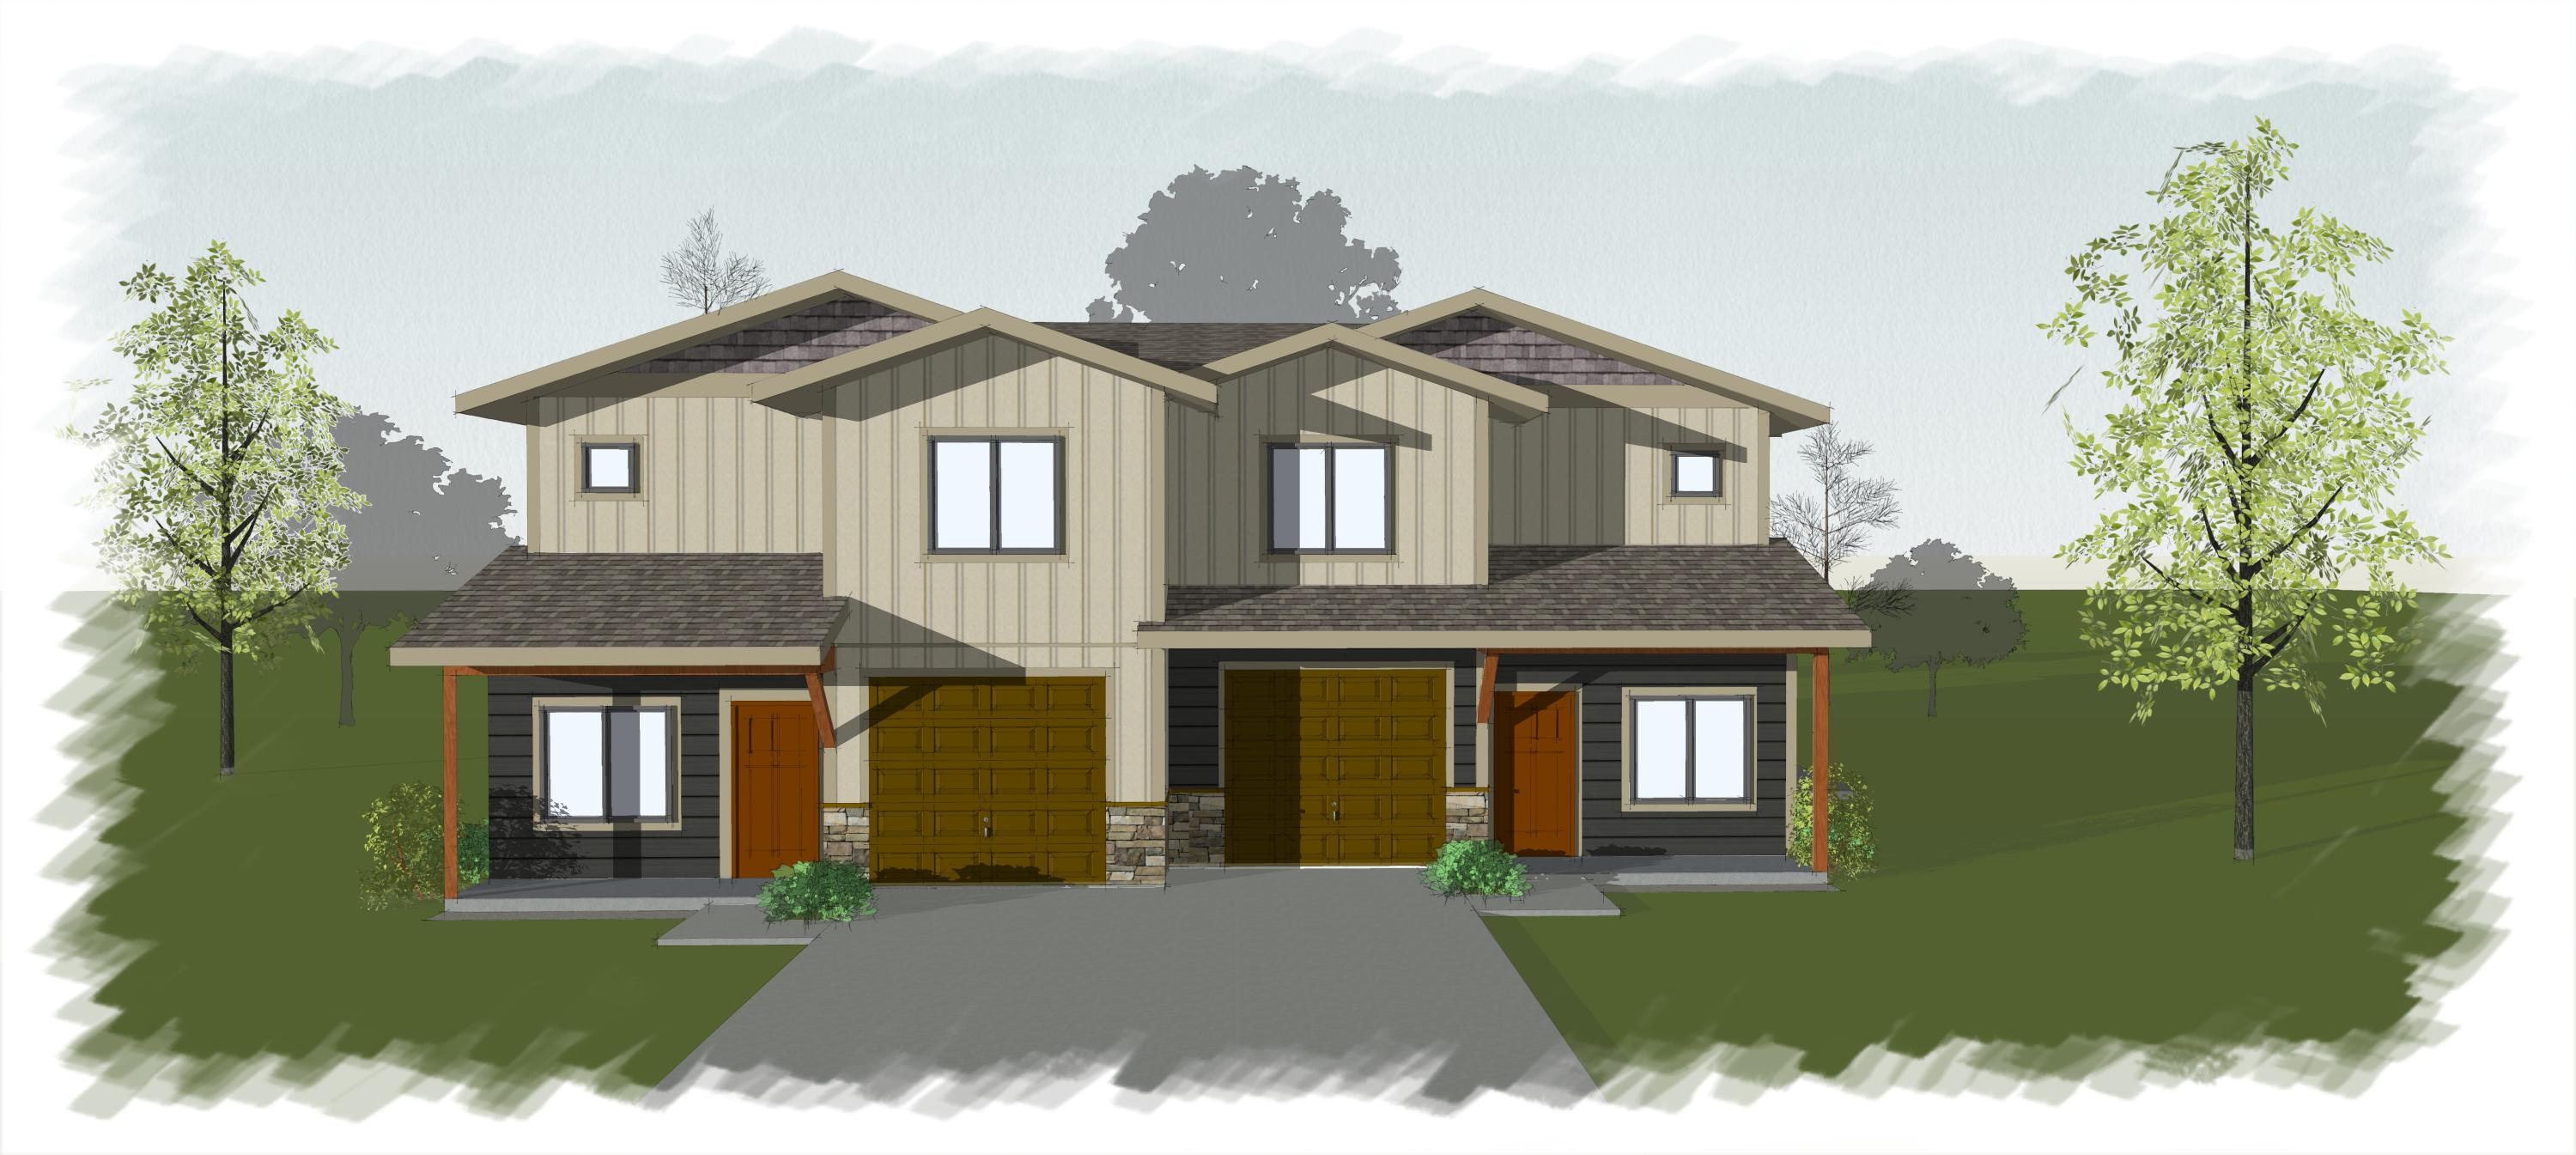 Property Image #2 for MLS #21807650